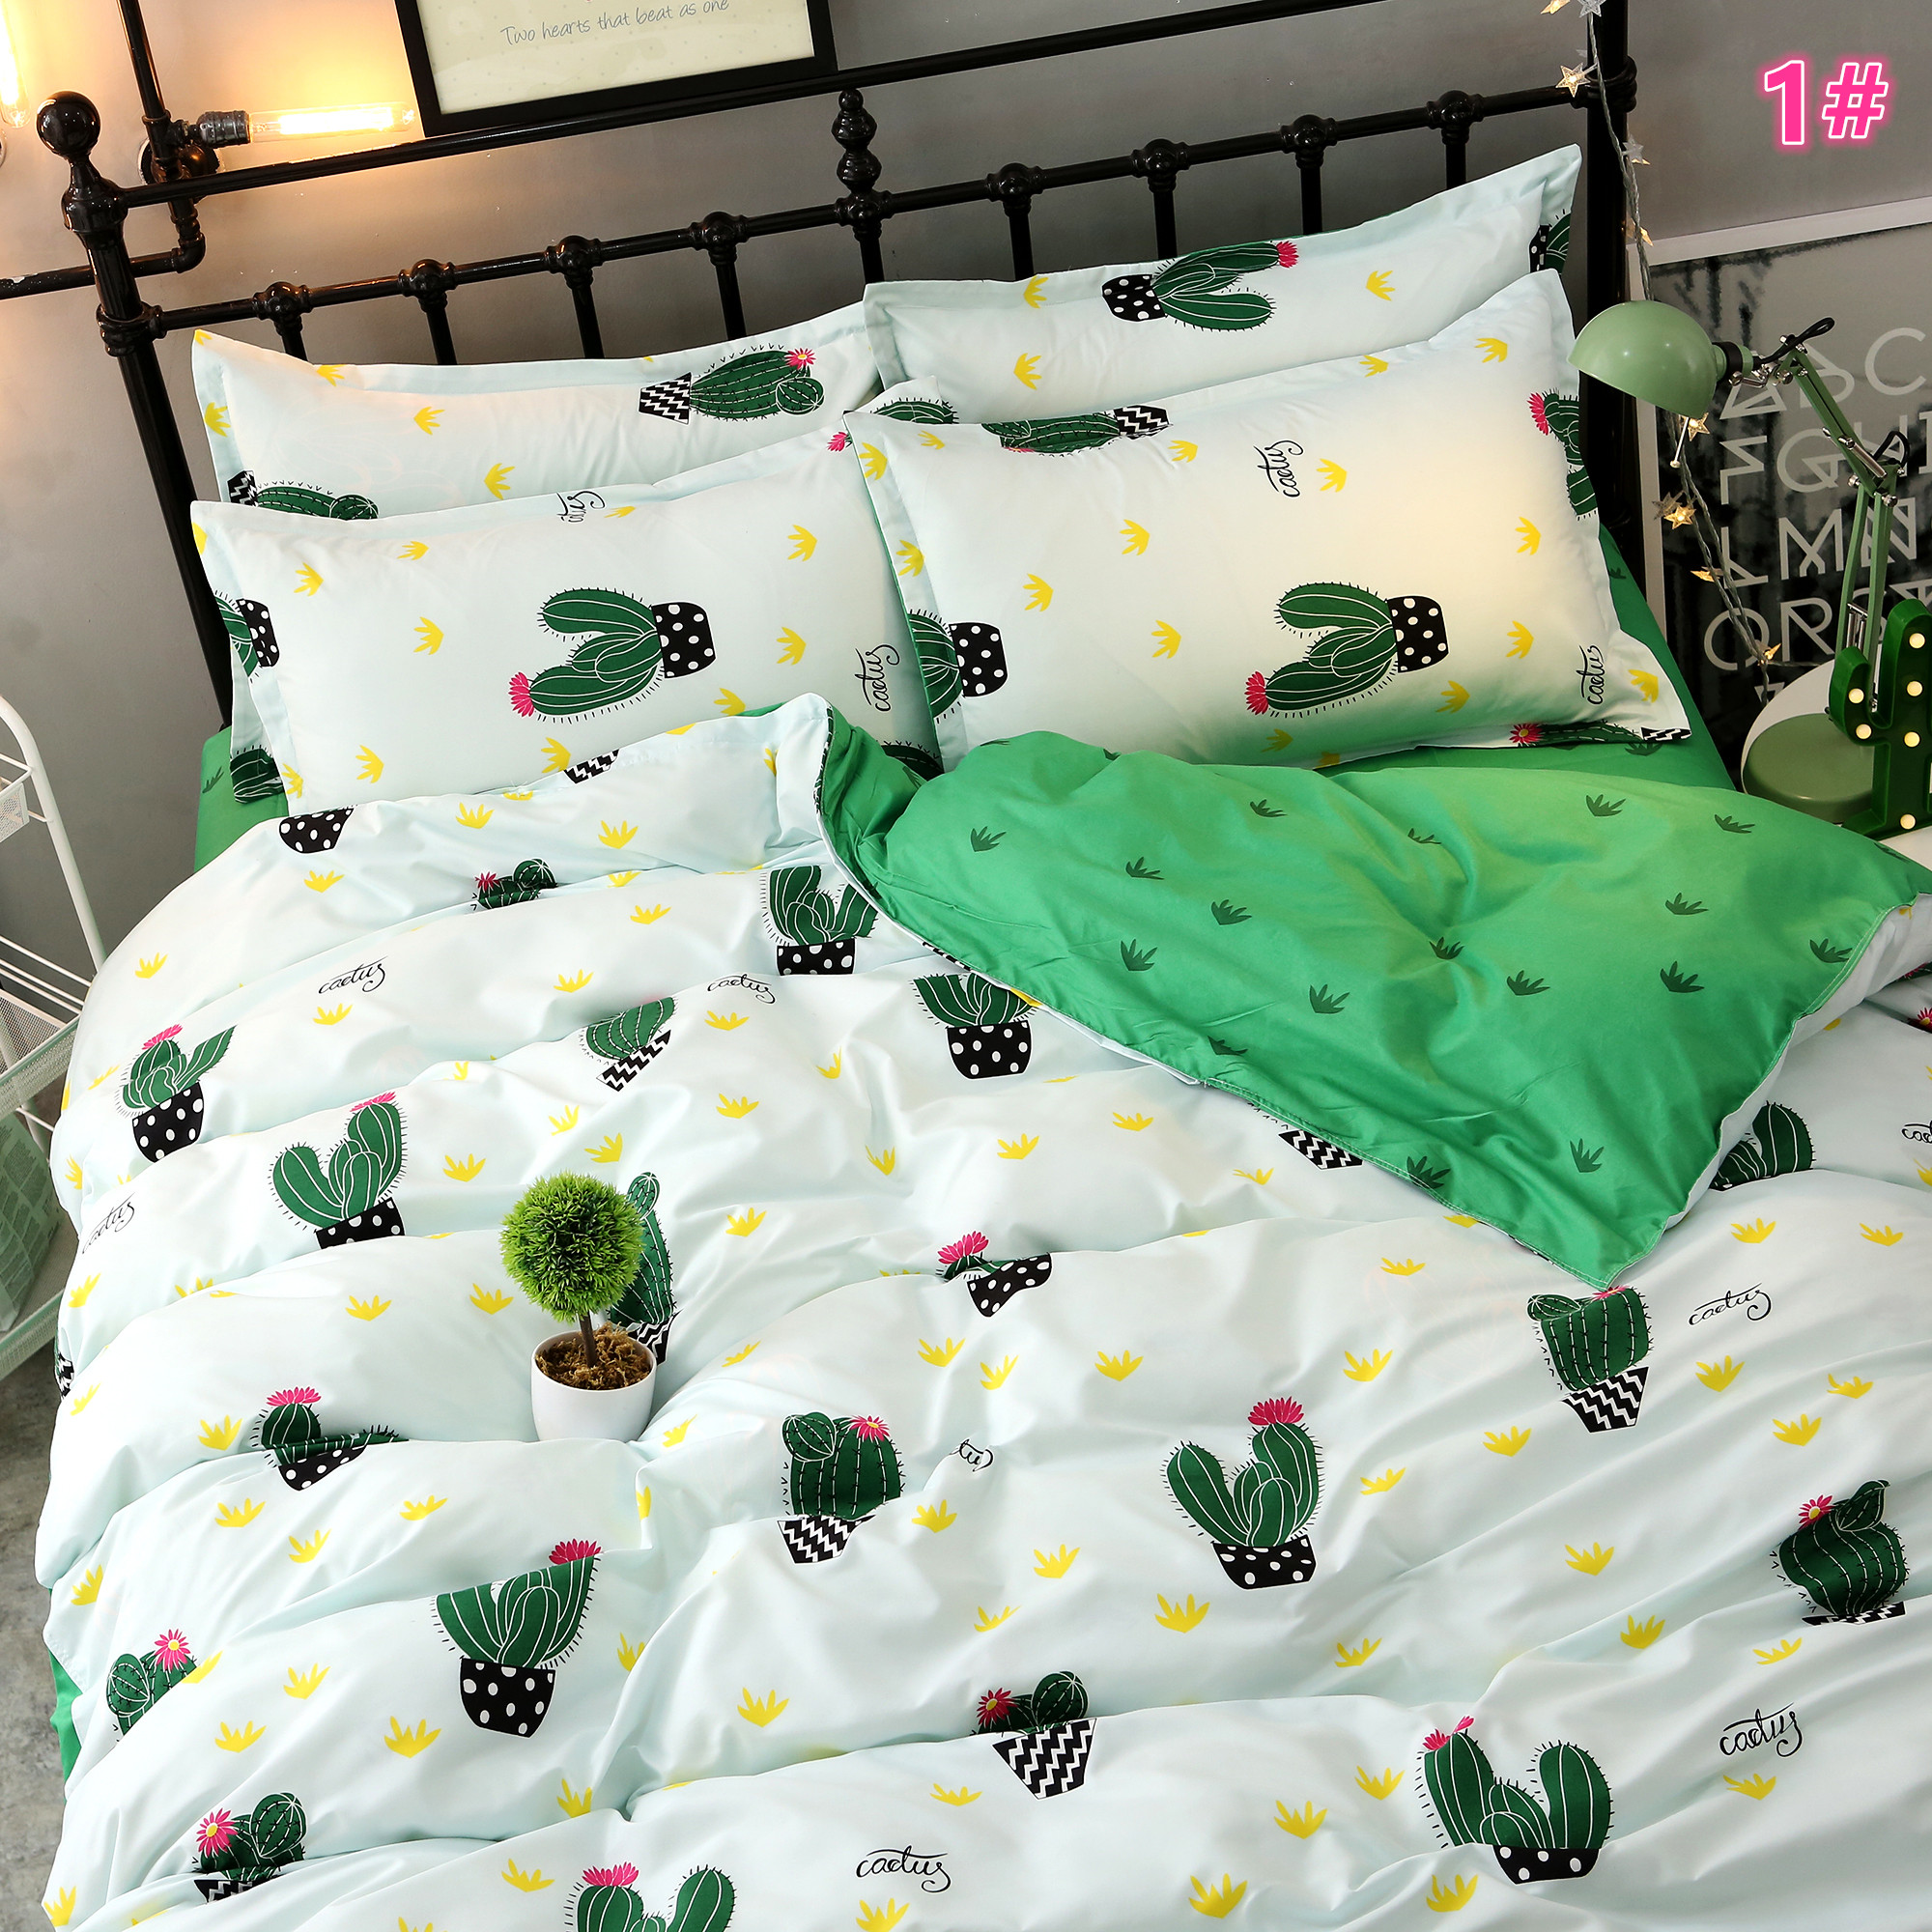 New Cactus Radish Cute Bed Linen Set Of Four Sets Harajuku Fashion Online Store Powered By Storenvy